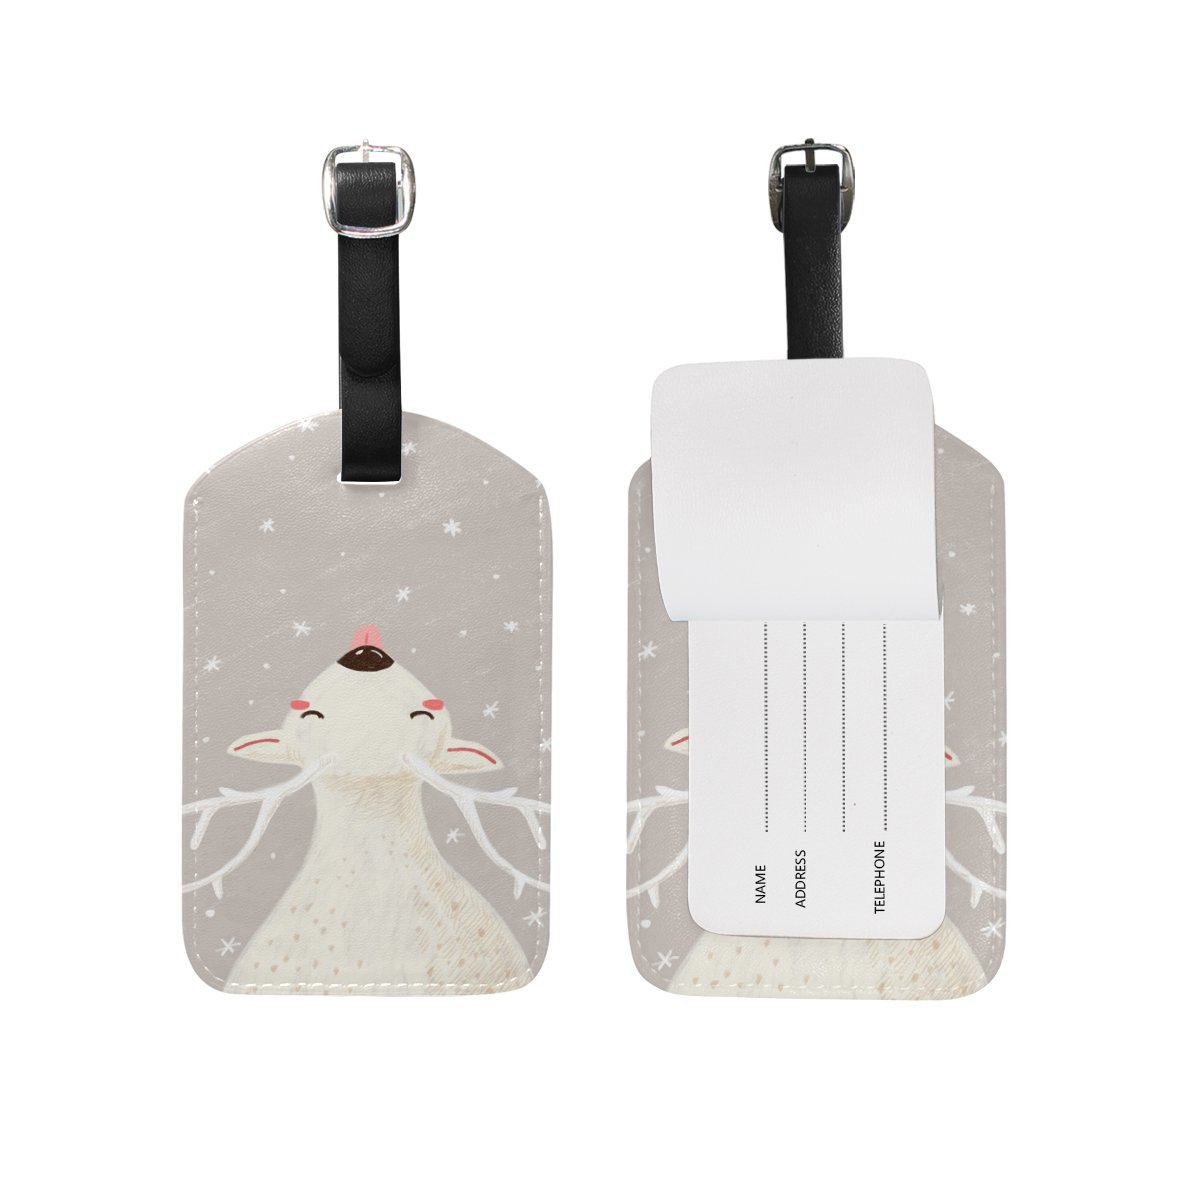 1Pcs Saobao Travel Luggage Tag White Elk PU Leather Baggage Suitcase Travel ID Bag Tag